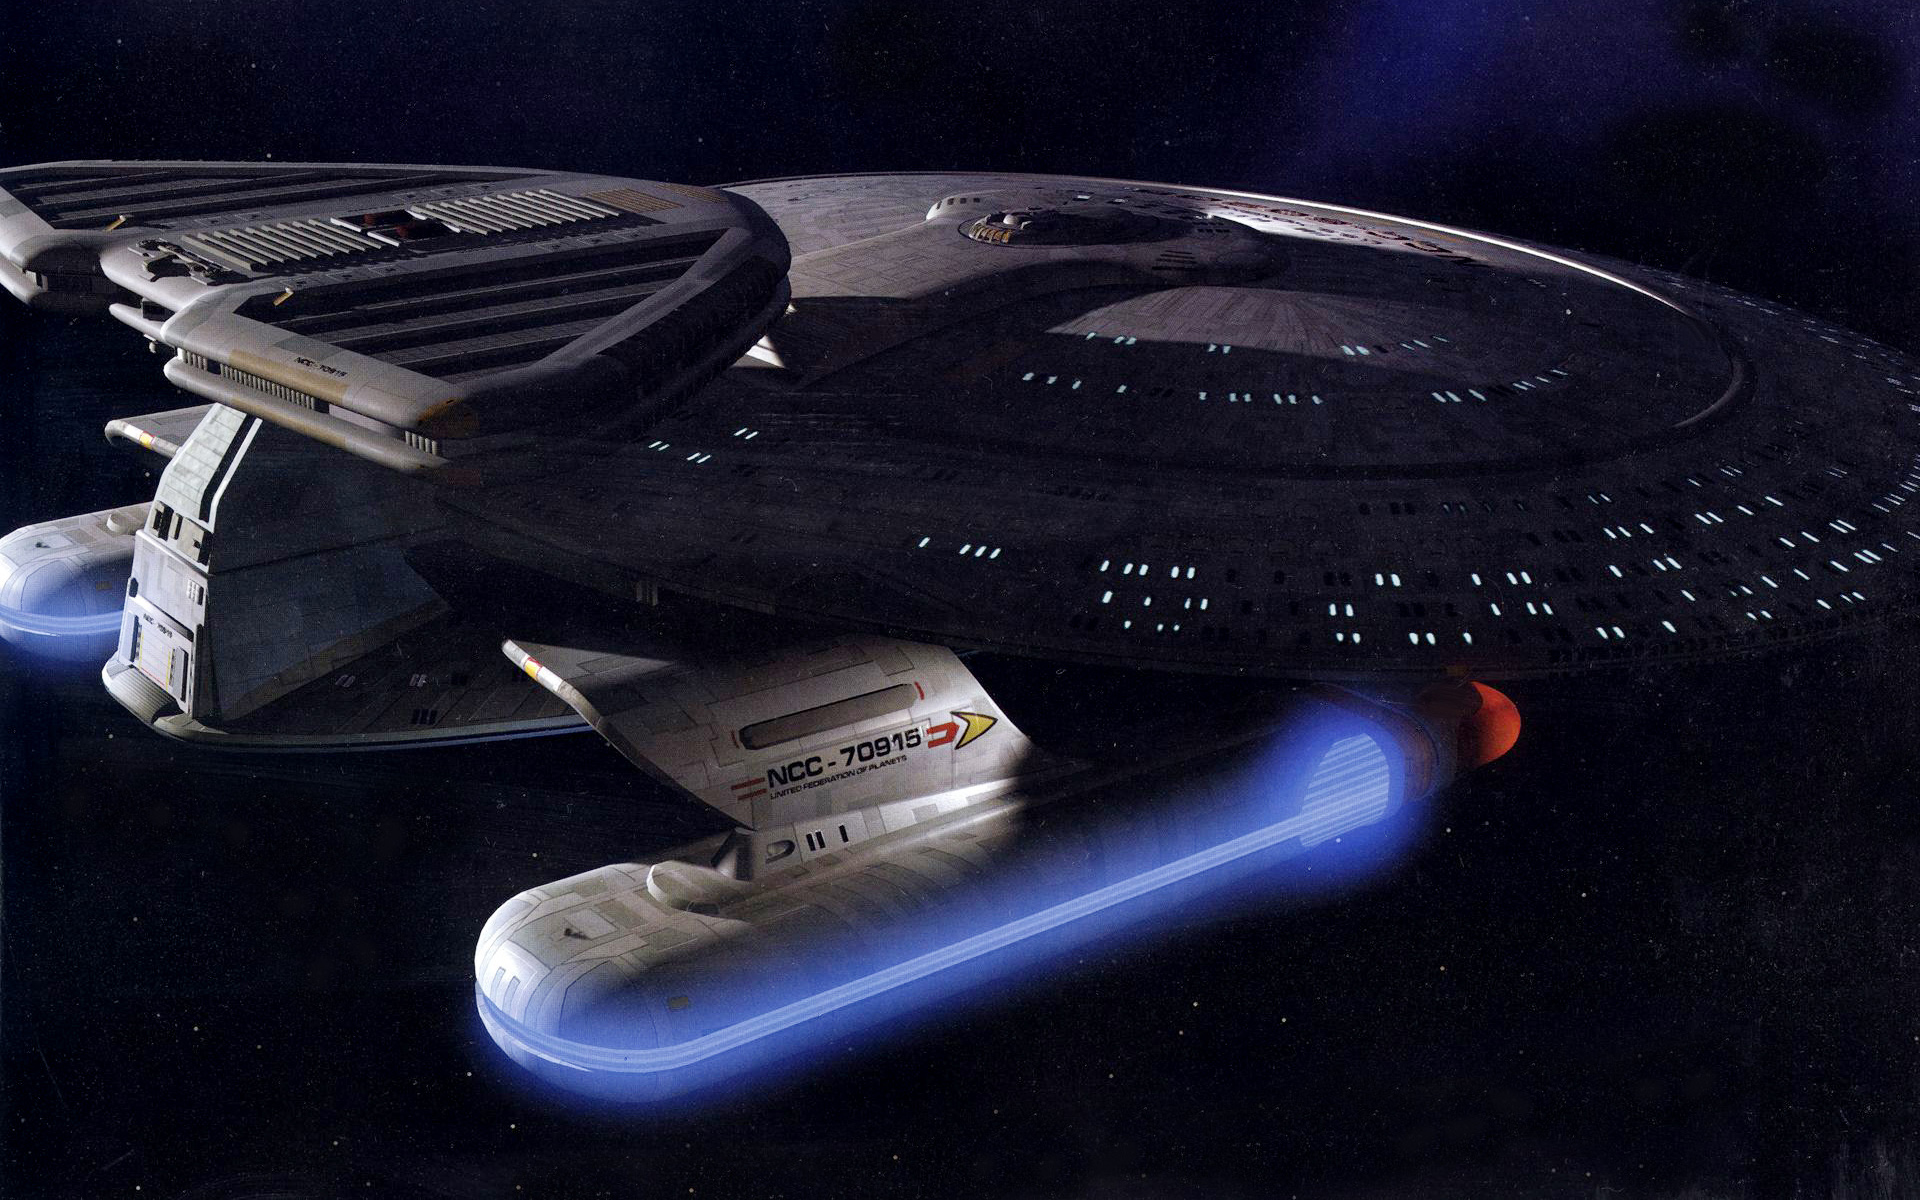 Andromeda Galaxy Wallpaper Iphone Uss Bonchune Ncc 70915 Full Hd Wallpaper And Background